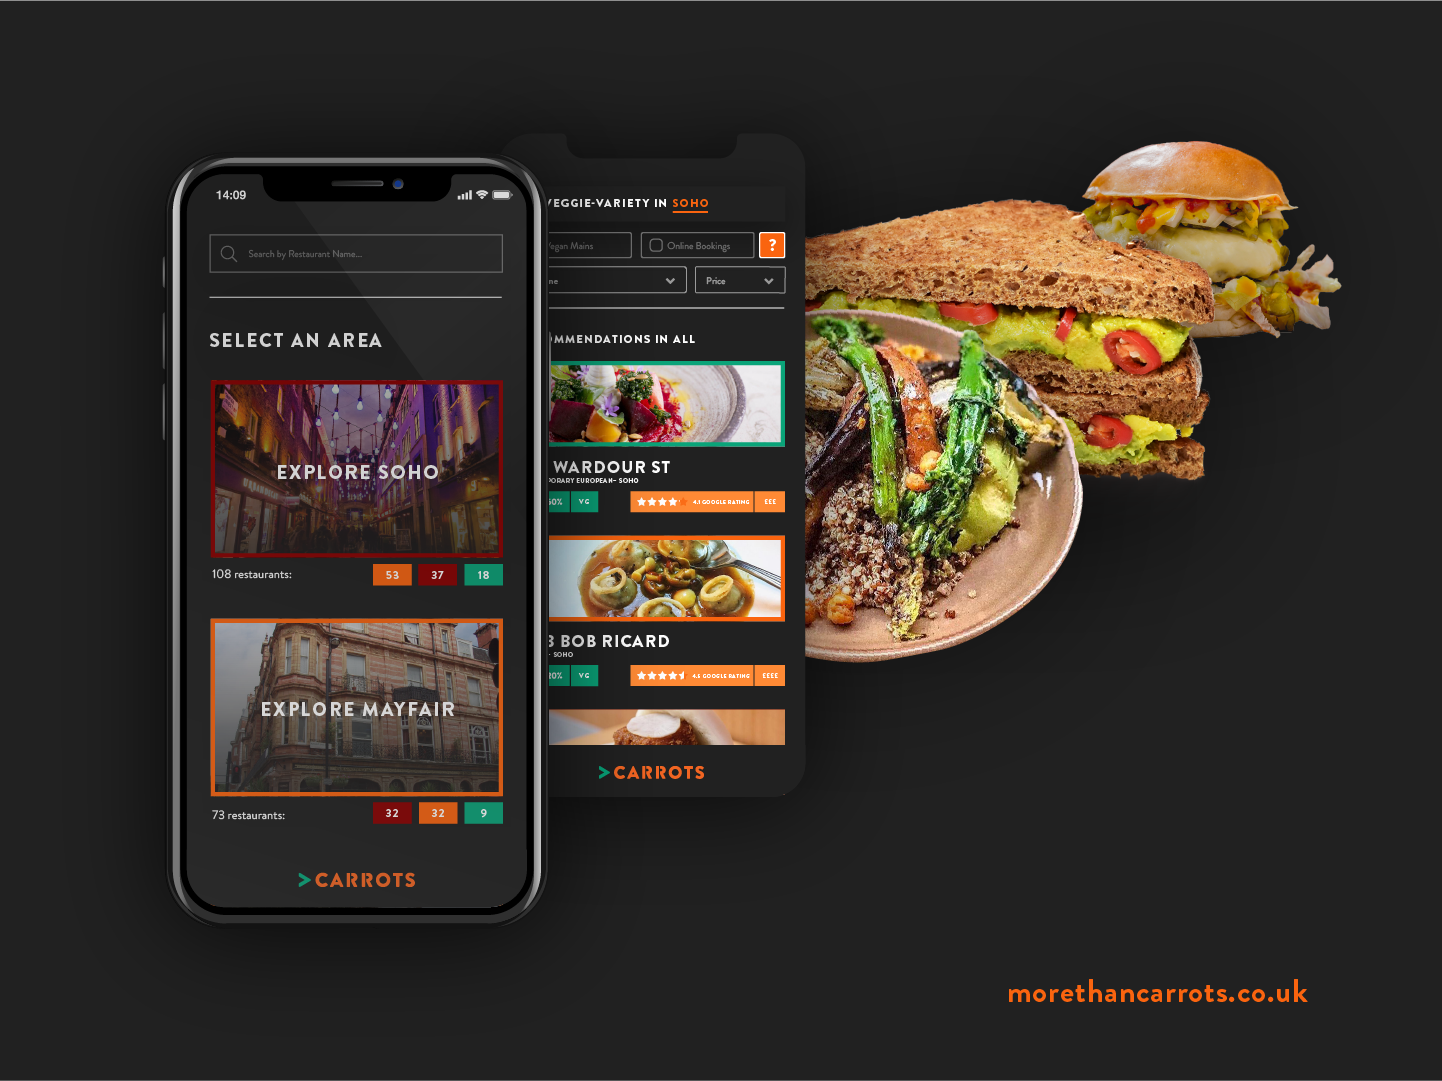 More Than Carrots App Campaign by Charlotte Downs on Dribbble